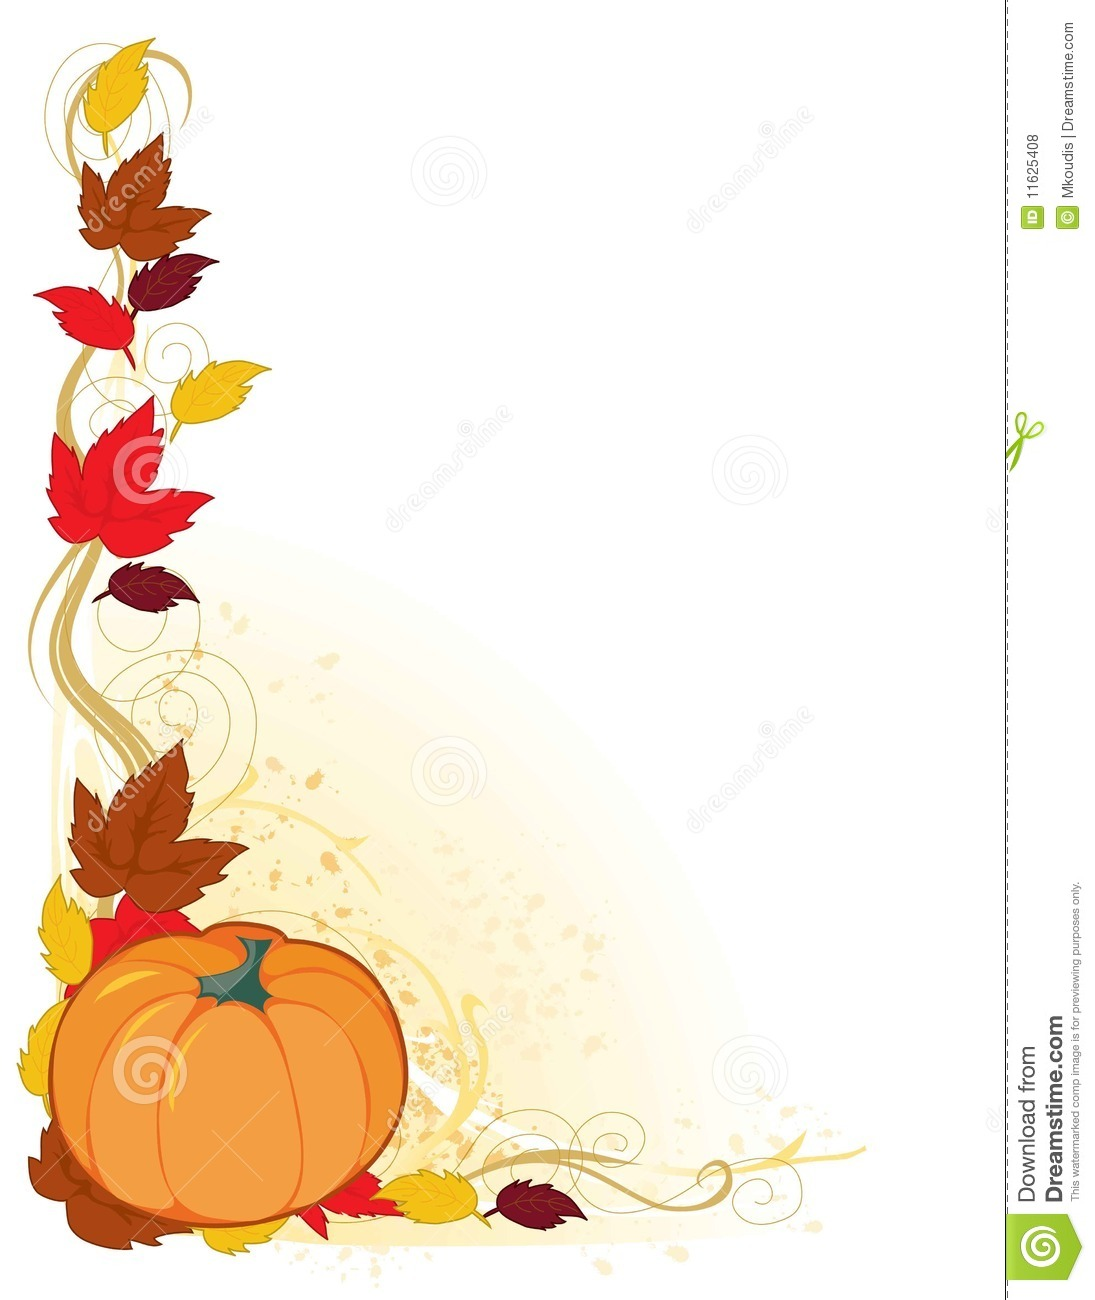 Fall Leaves Border Clipart | Clipart Panda - Free Clipart ...